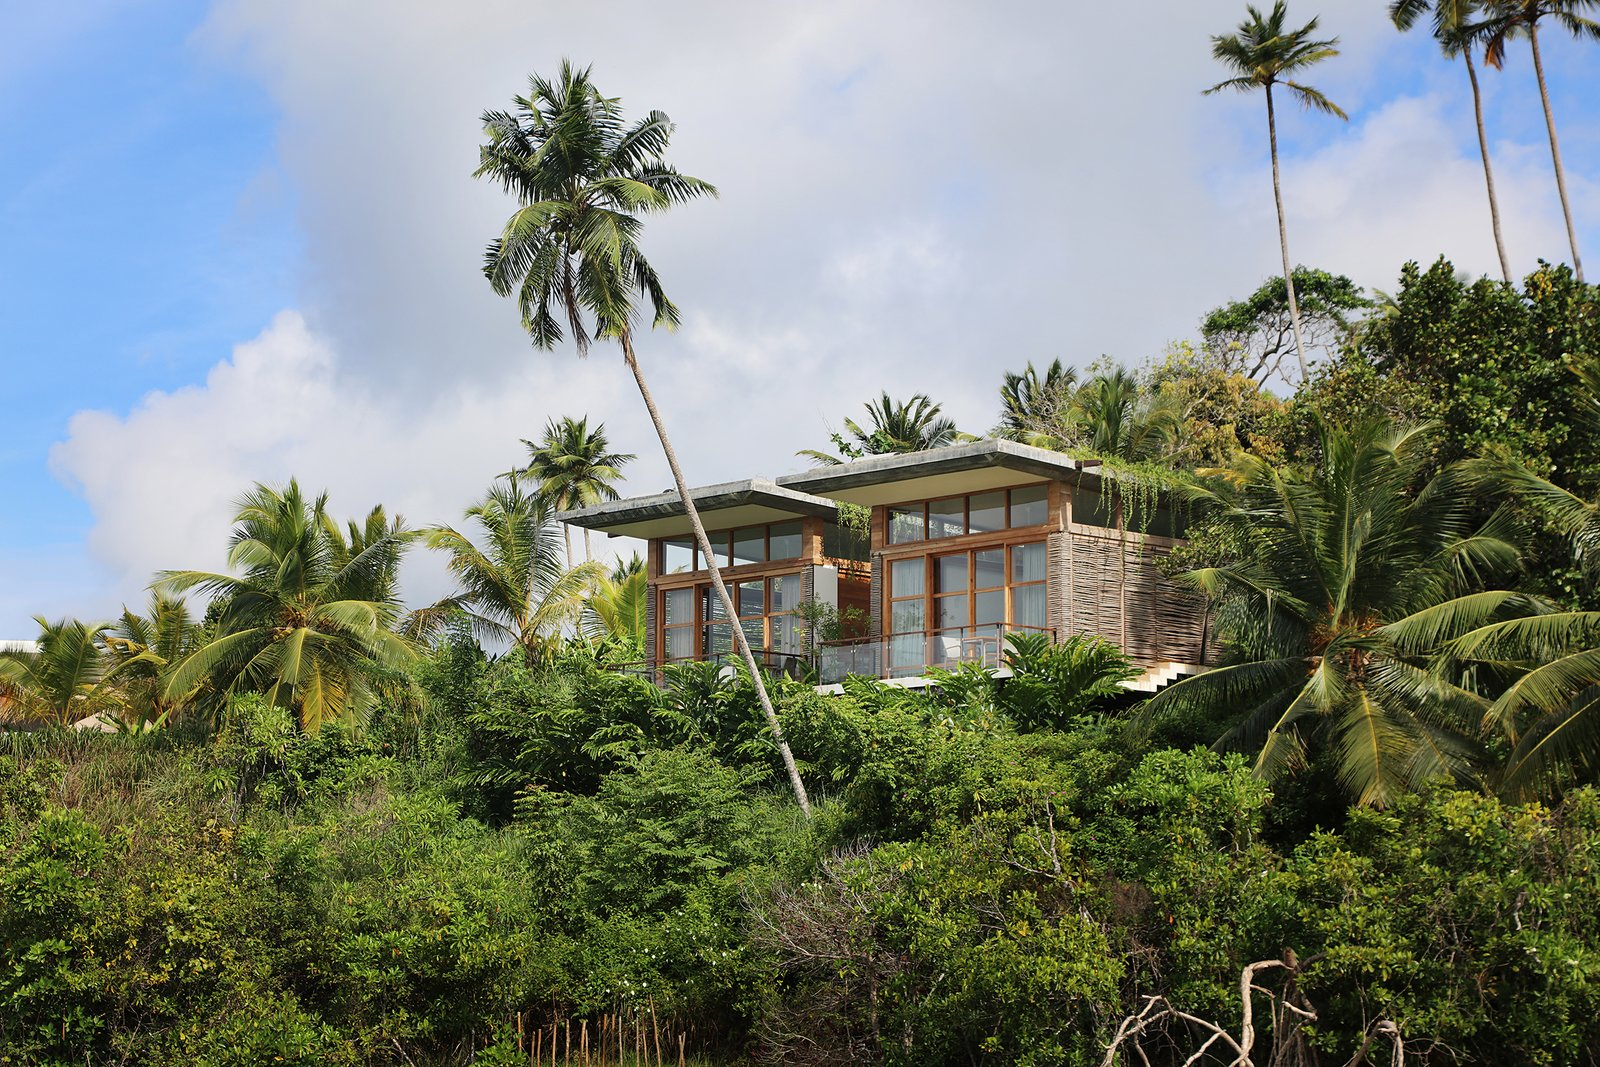 Exterior, Glass Siding Material, Flat RoofLine, and Wood Siding Material Surrounded by Lake Koggala, TRI Hotel is a sustainably built resort Sri Lankan resort with green walls and roofs, recycled wood furniture and solar heating that offers spectacular 360-degree views of verdant rainforests and the lake.  Photo 3 of 11 in Escape to the Jungle in One of These Modern Forested Retreats